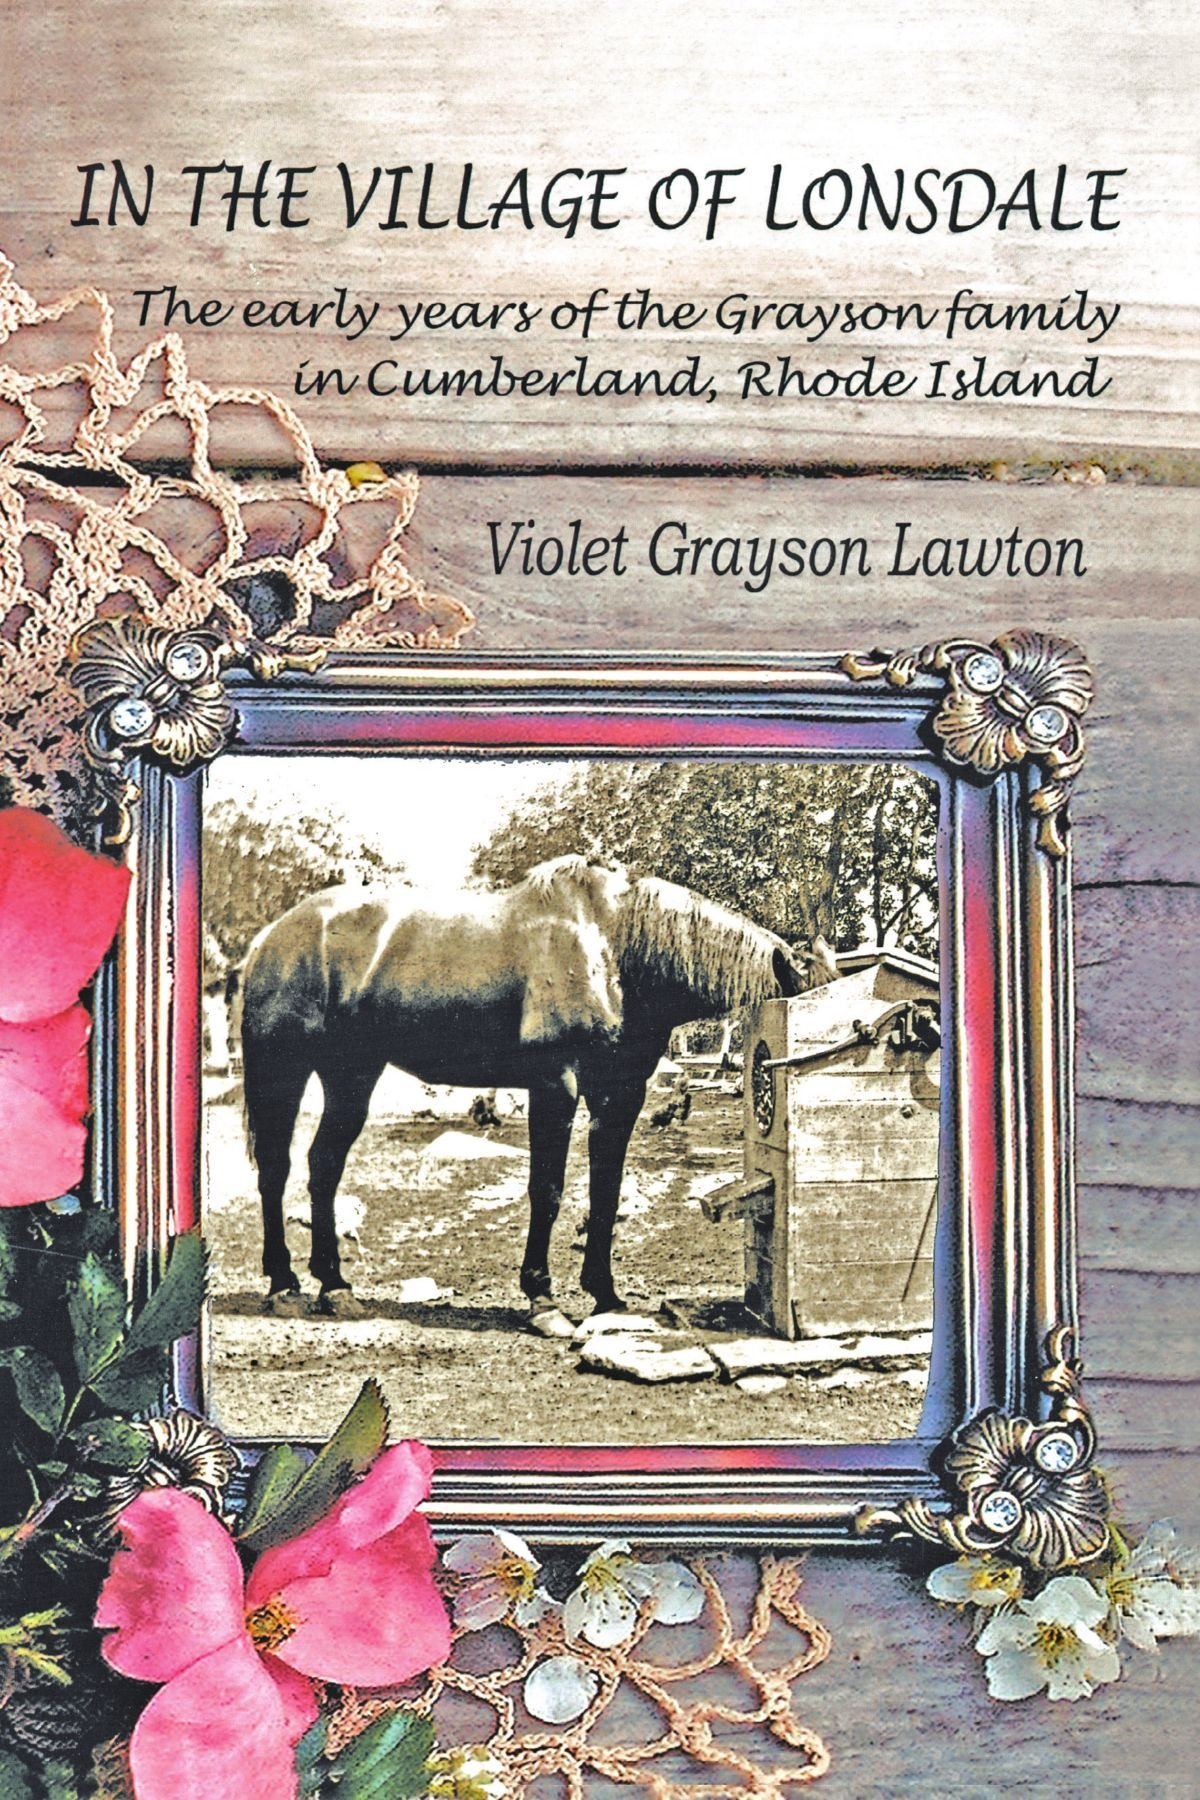 In the Village of Lonsdale: The Early Years of the Grayson Family in Cumberland, Rhode Island